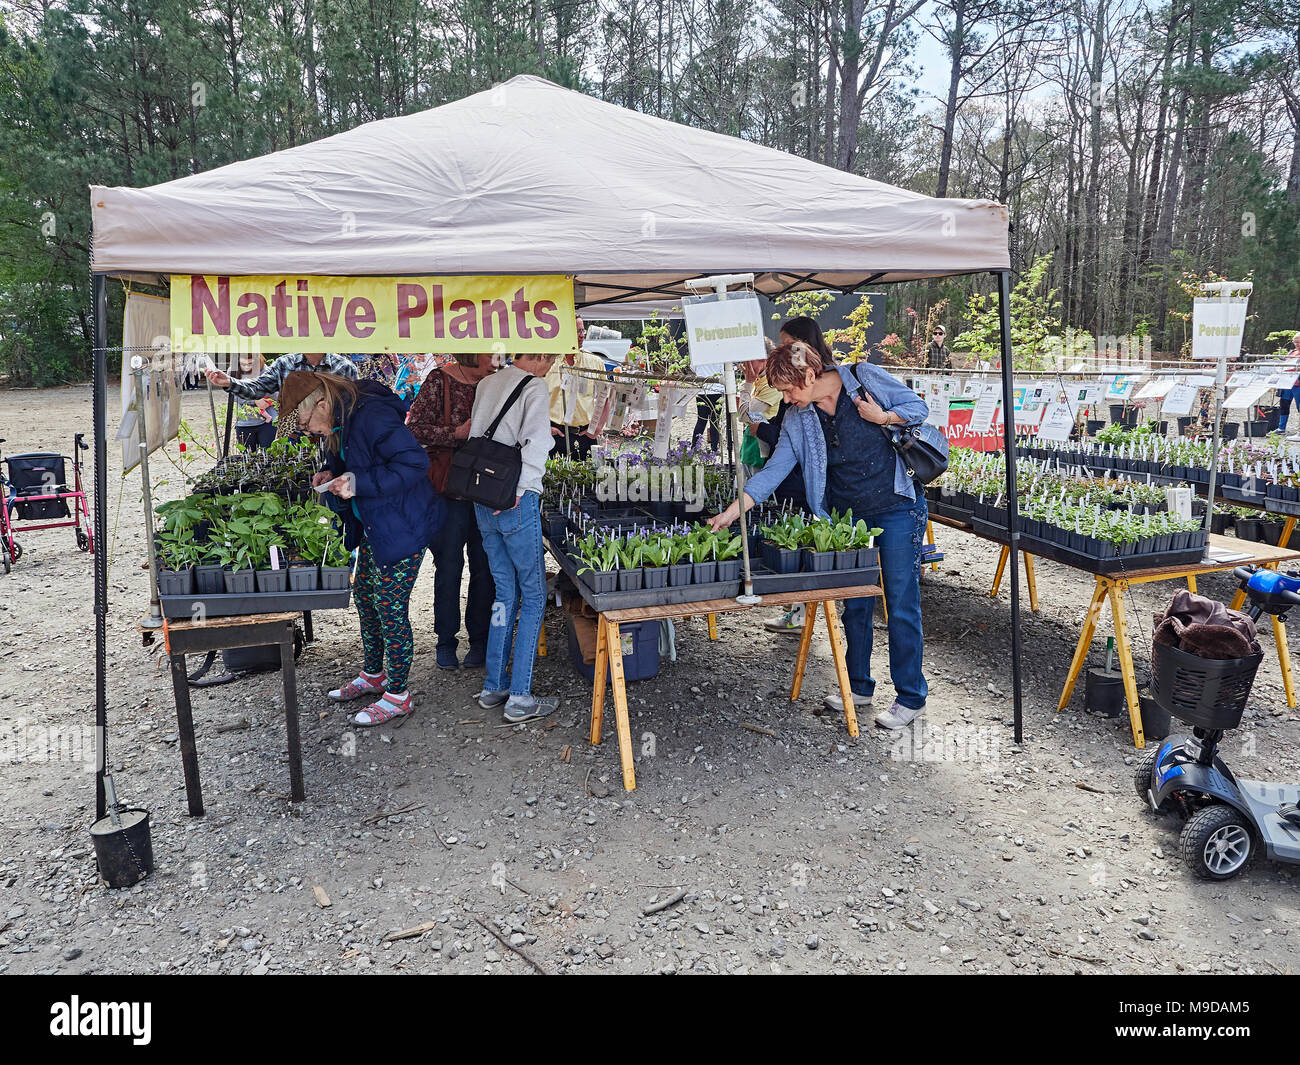 People shop for garden plants and flowers at the Spring plant and flower sale in Callaway Gardens, Pine Mountain GA, USA. - Stock Image